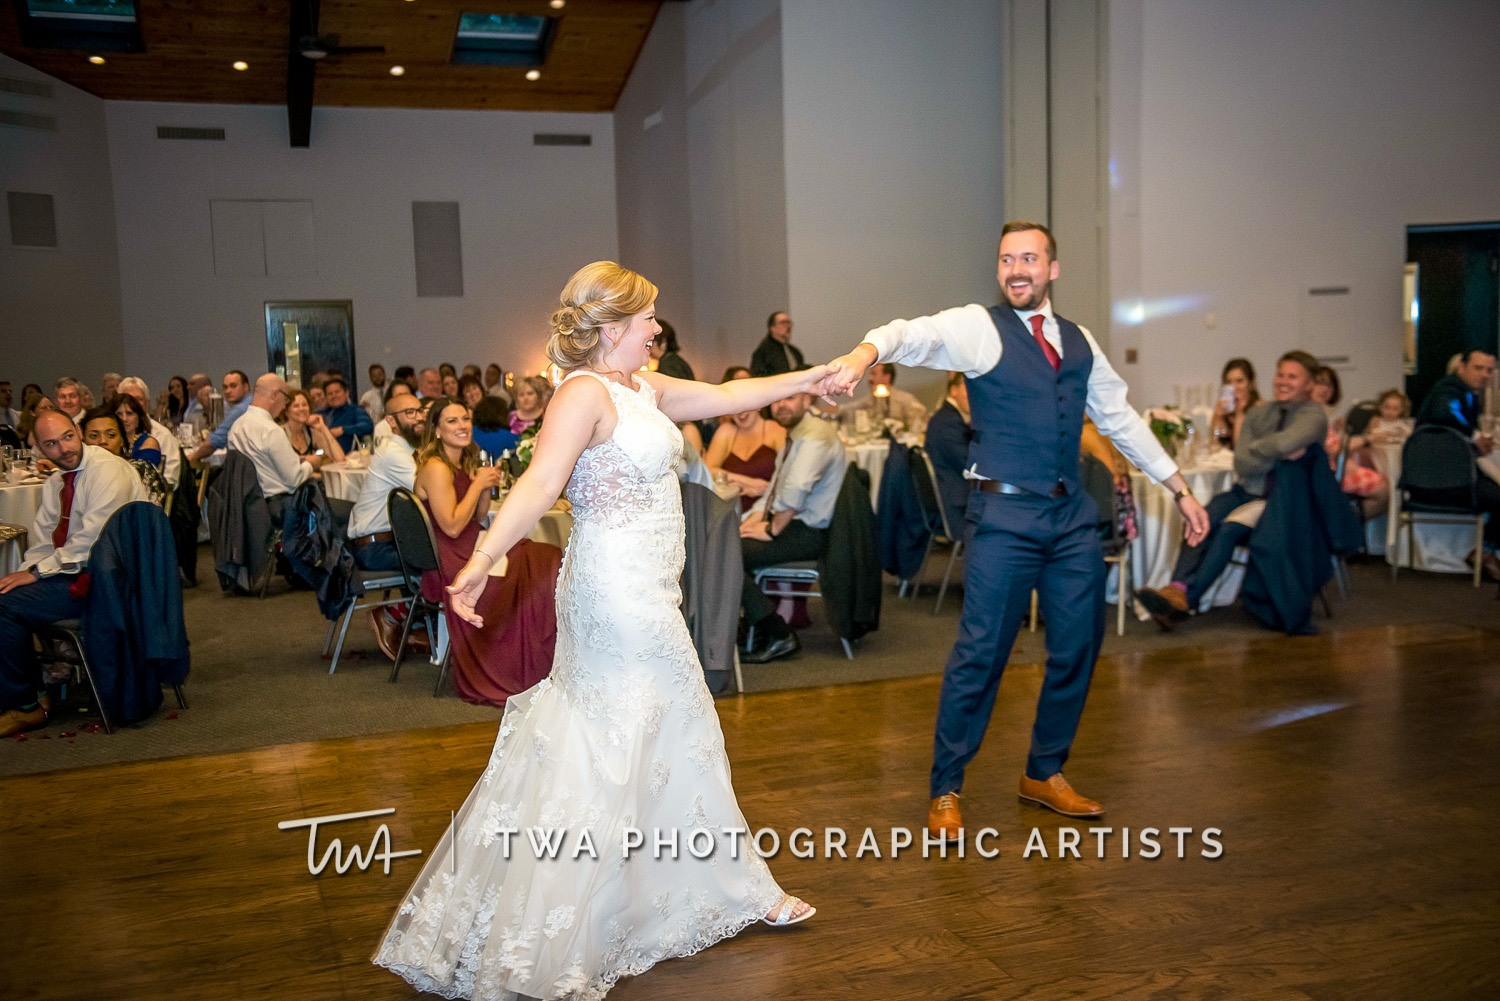 Chicago-Wedding-Photographer-TWA-Photographic-Artists-White-Pines-Banquets_Petersen_Sherman_ZZ_DL-074_0699